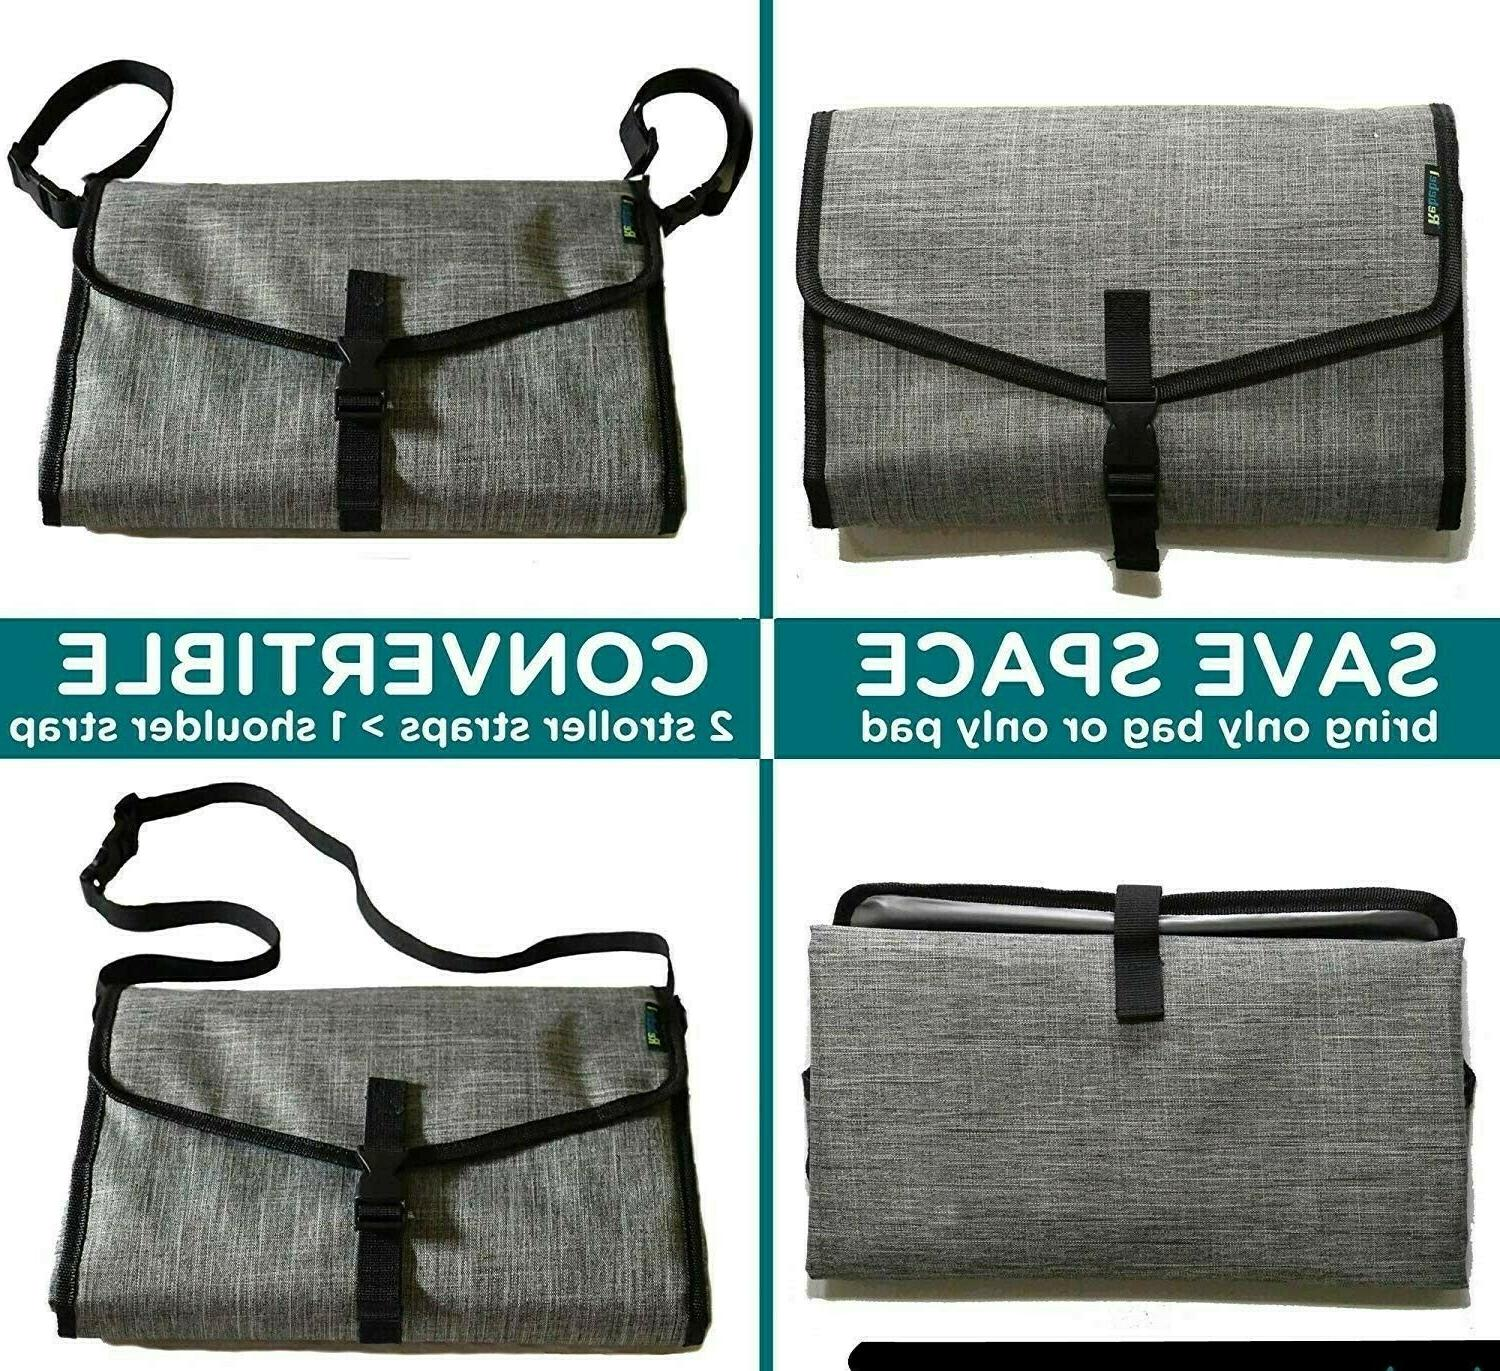 Portable Baby Diapering Changing Pad Station w/ Convertible Straps &